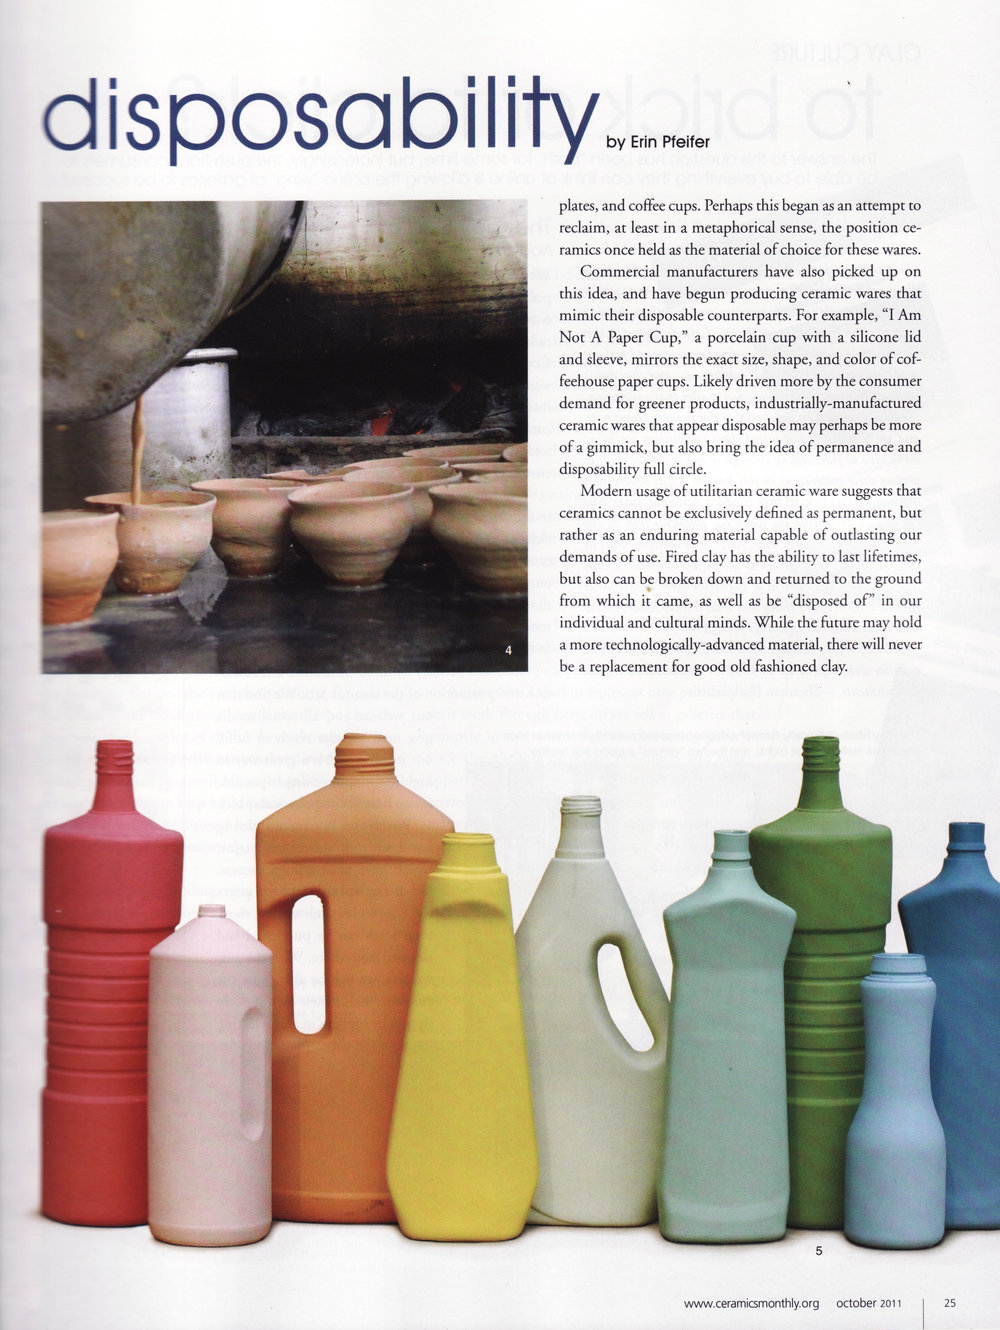 ceramics monthly oct 2011 1.jpg